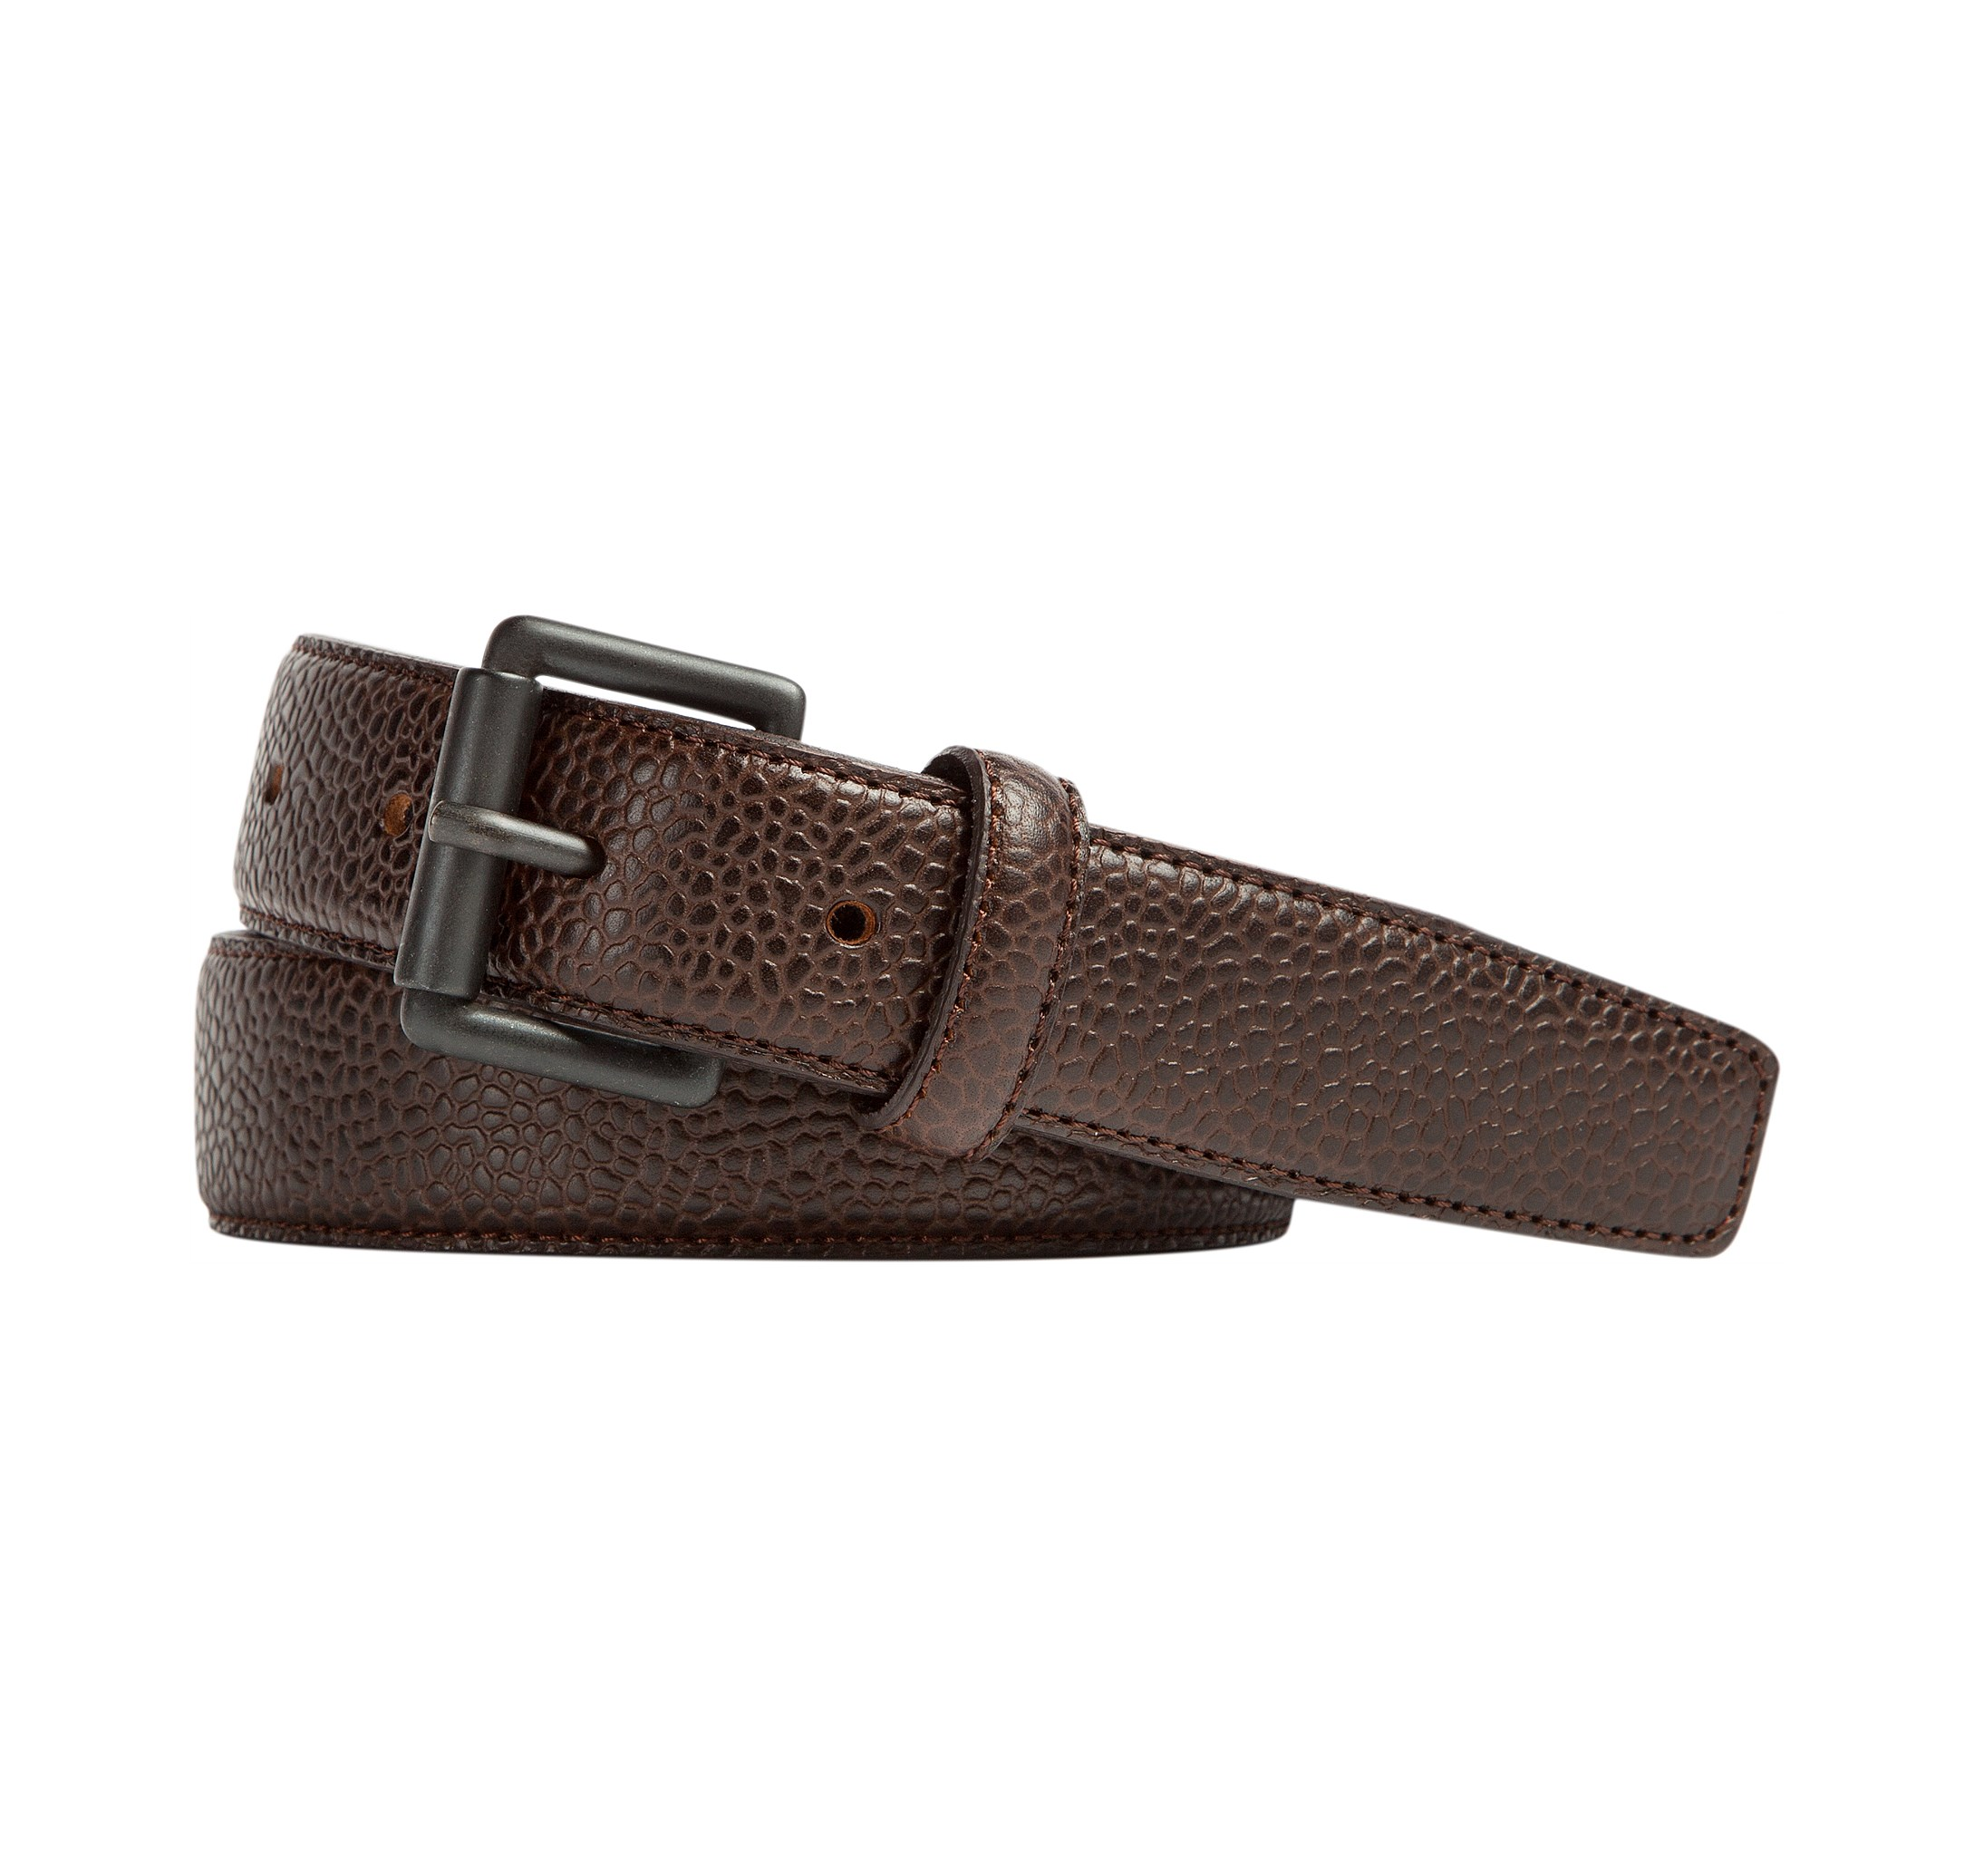 brown belt a15211 suitsupply store